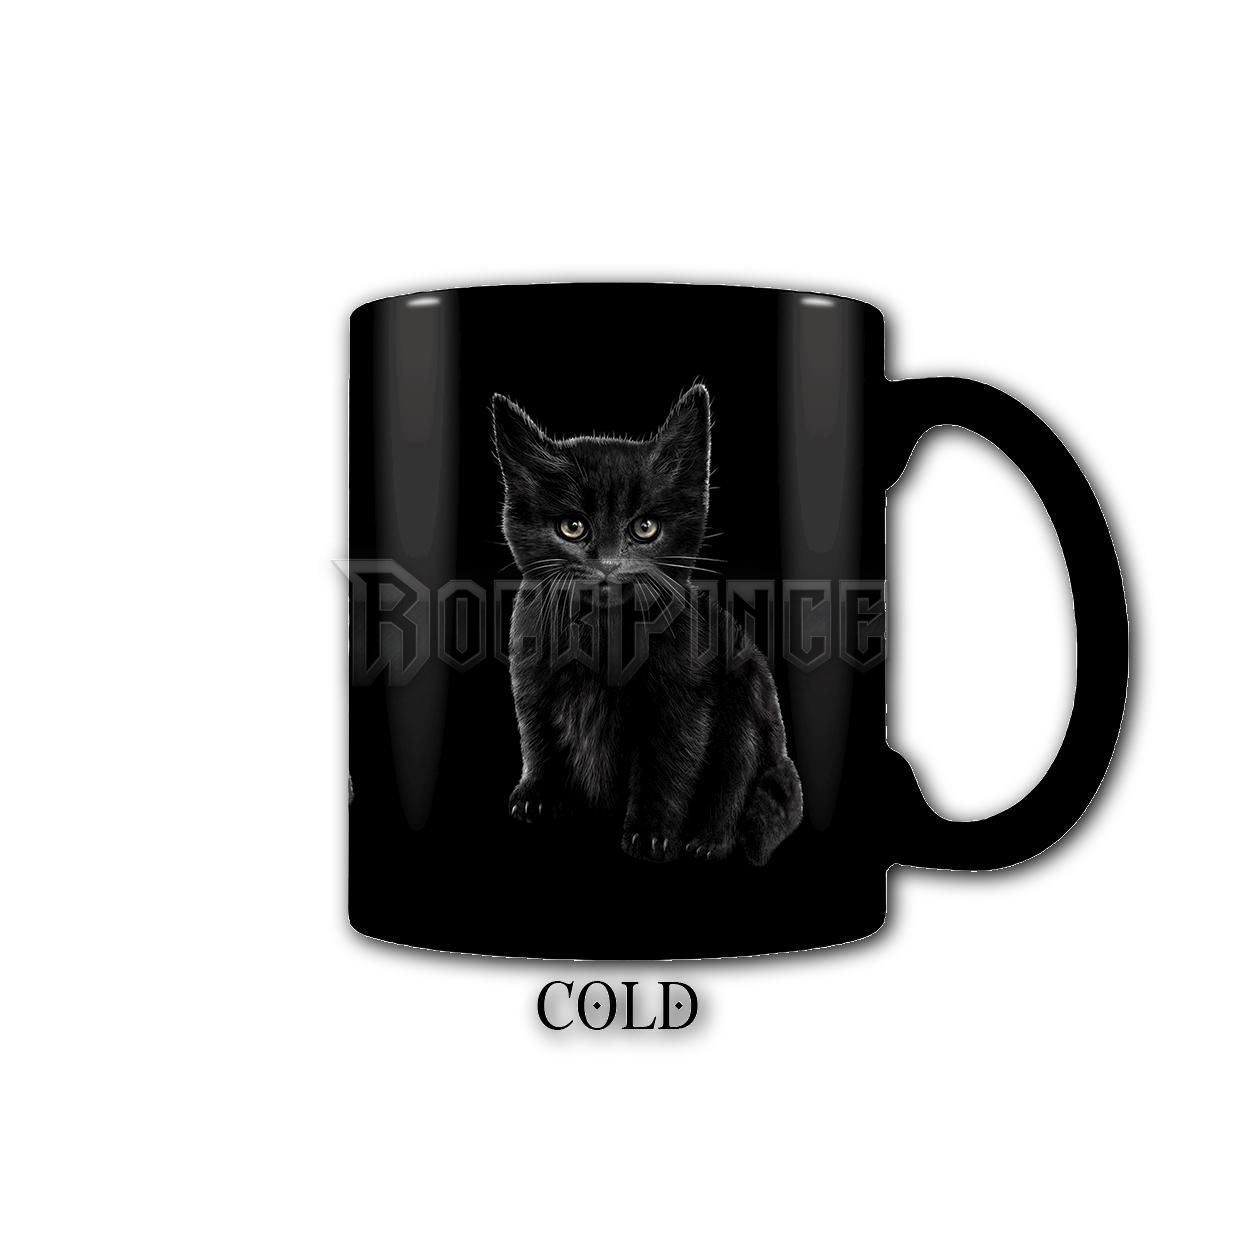 BAT CAT - Heat Change Ceramic Coffee Mug - Gift Boxed - F015A007